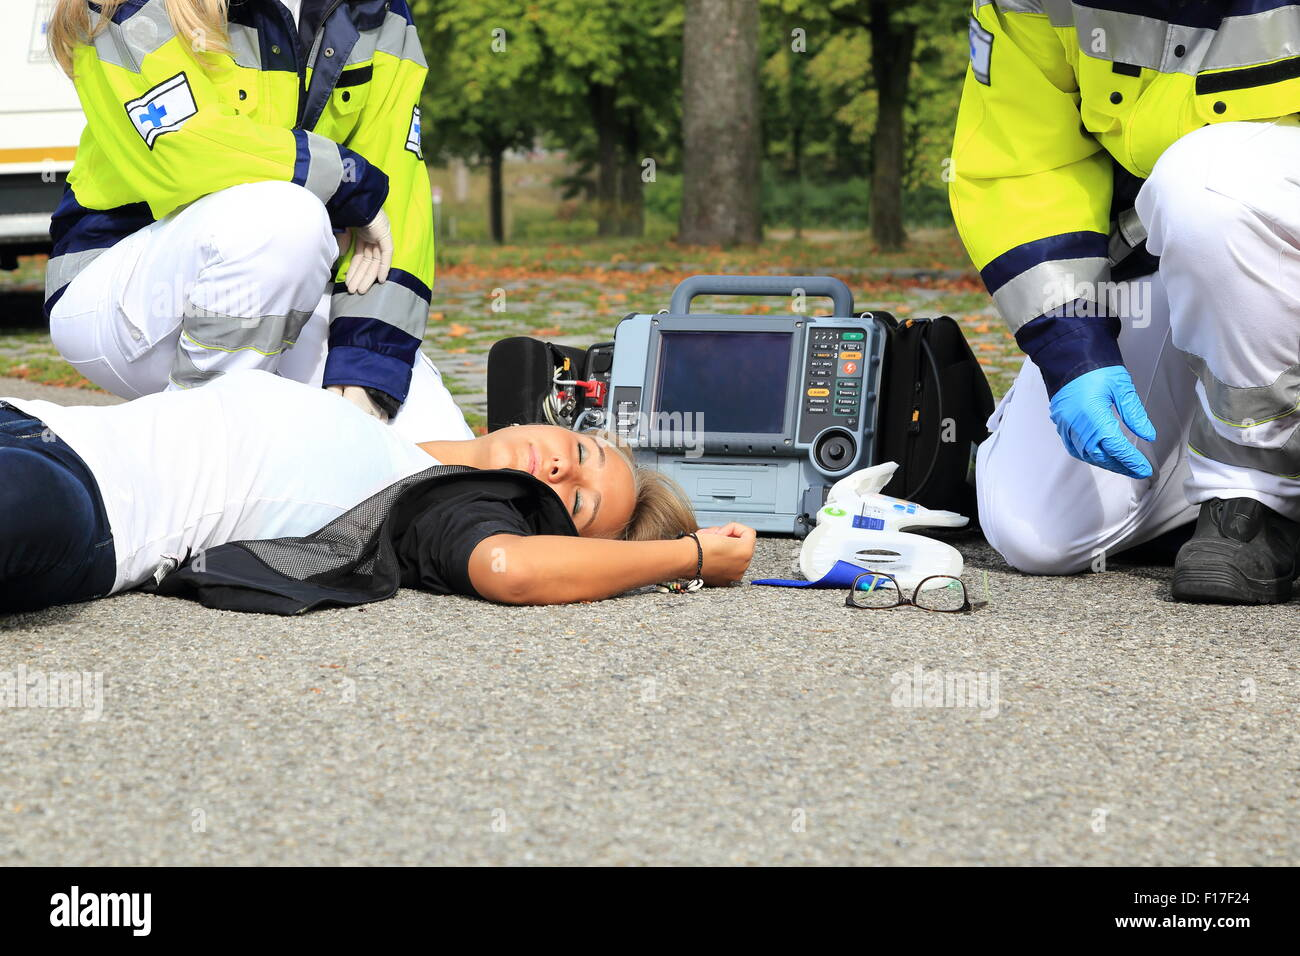 A Woman after Accident with paramedic and defibrillator first aid - Stock Image